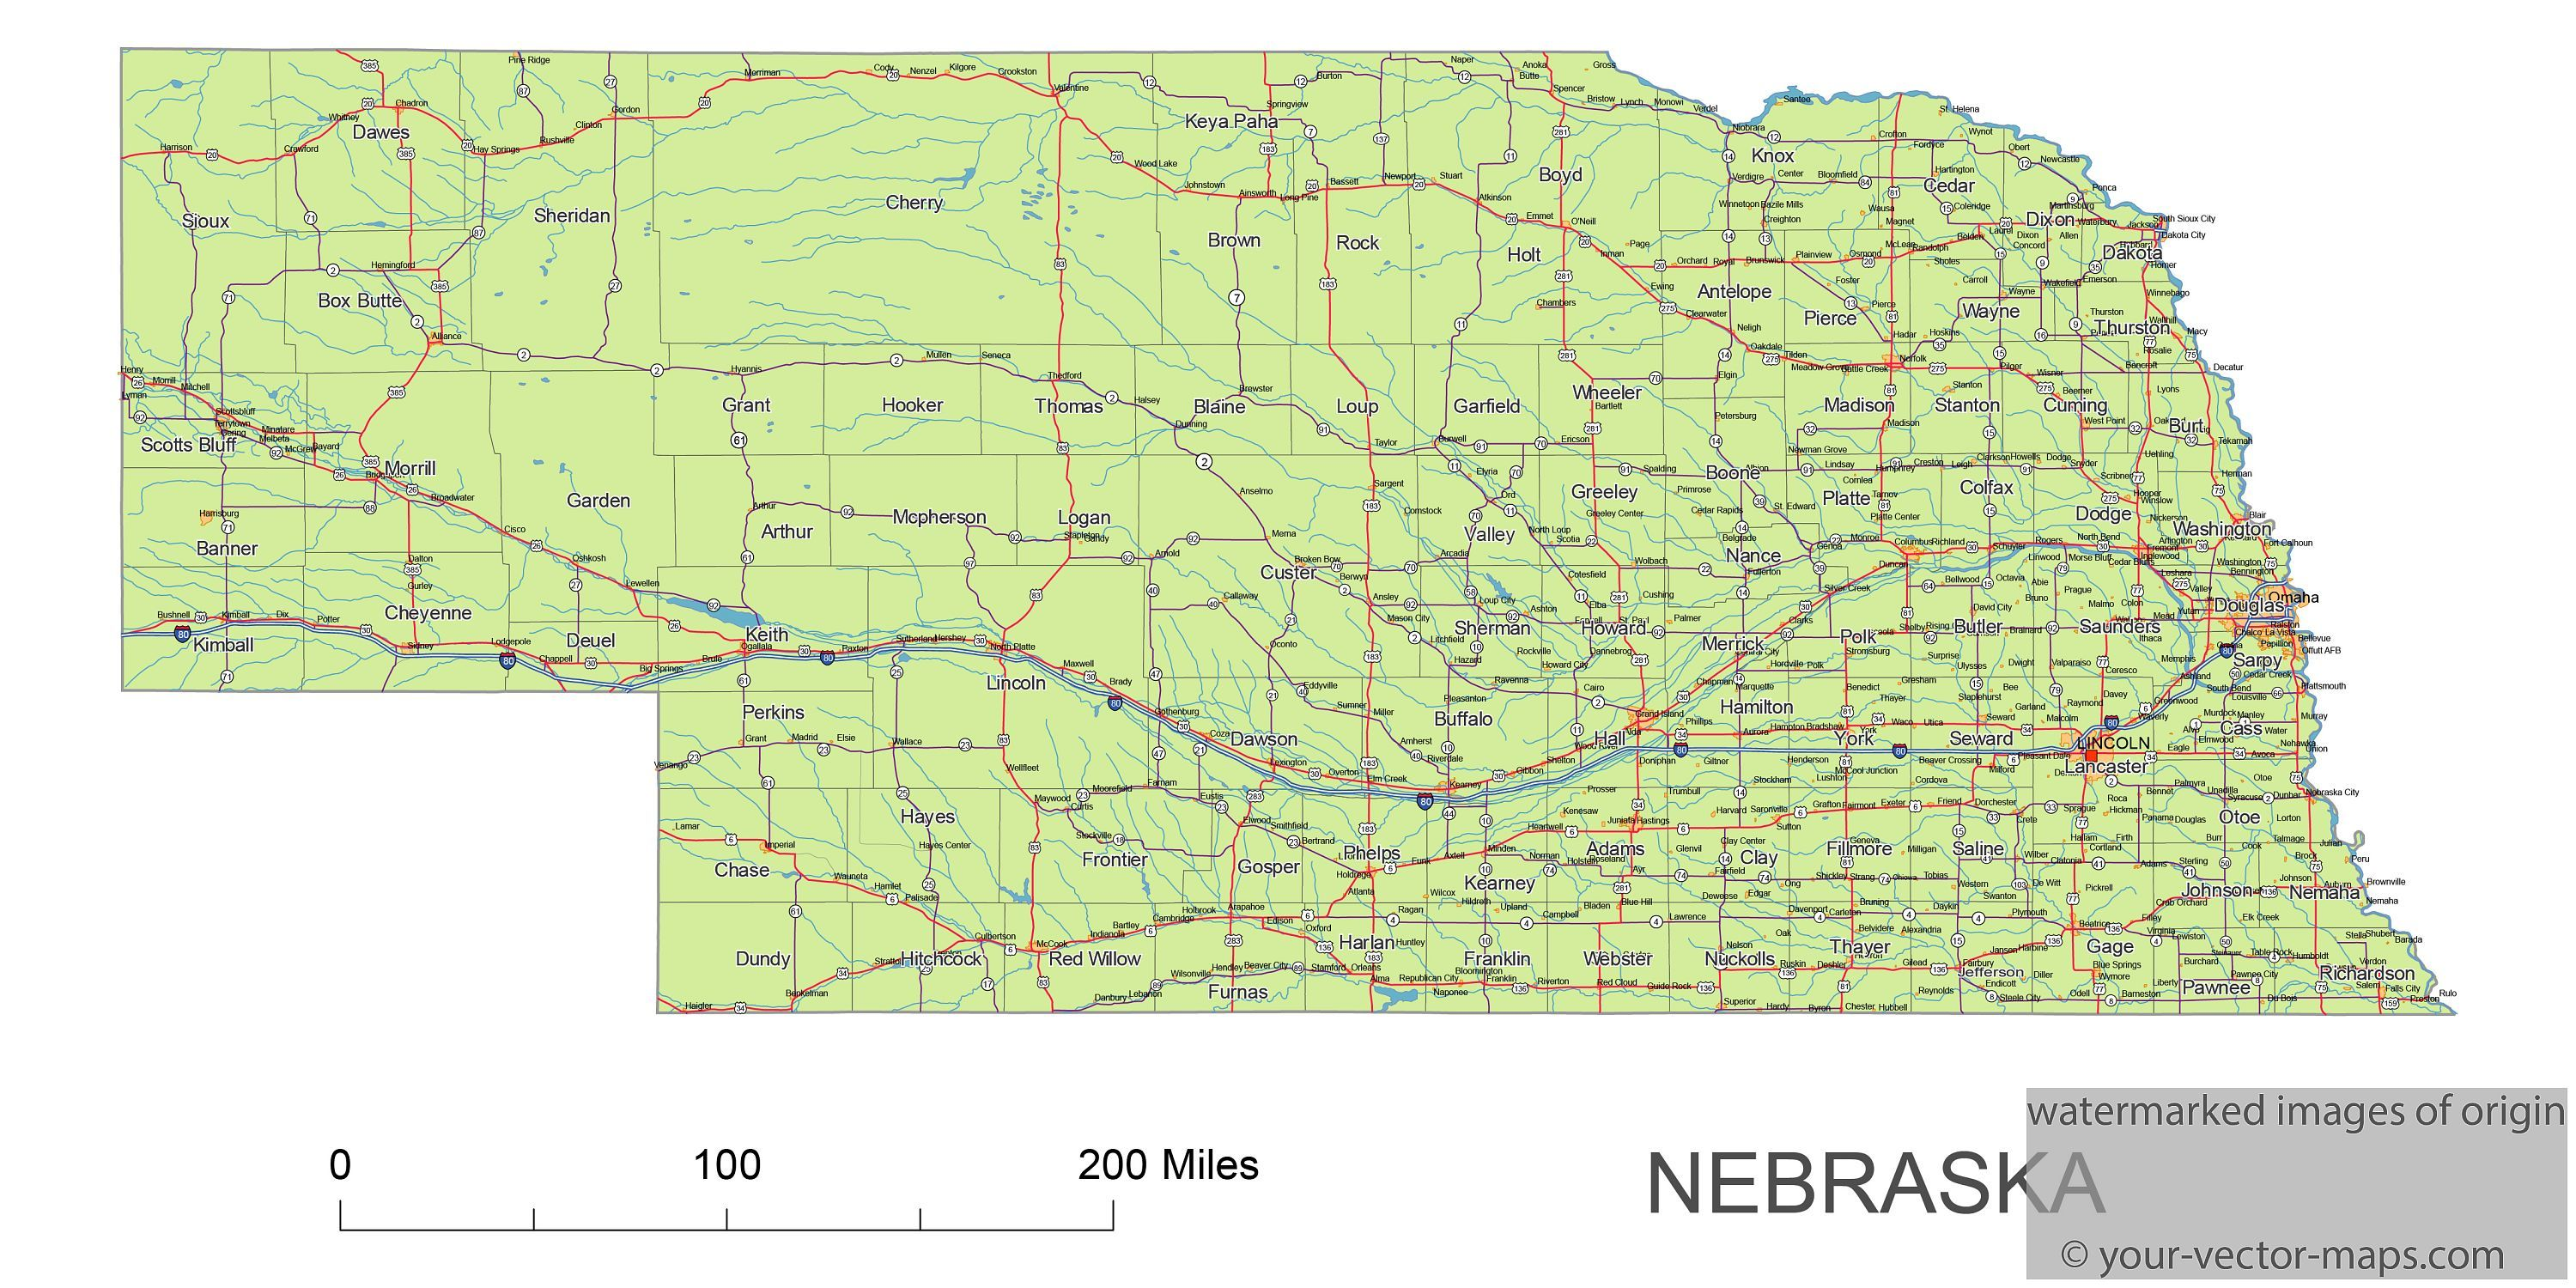 Nebraska State Route Network Map Nebraska Highways Map Cities Of - Us-map-nebraska-state